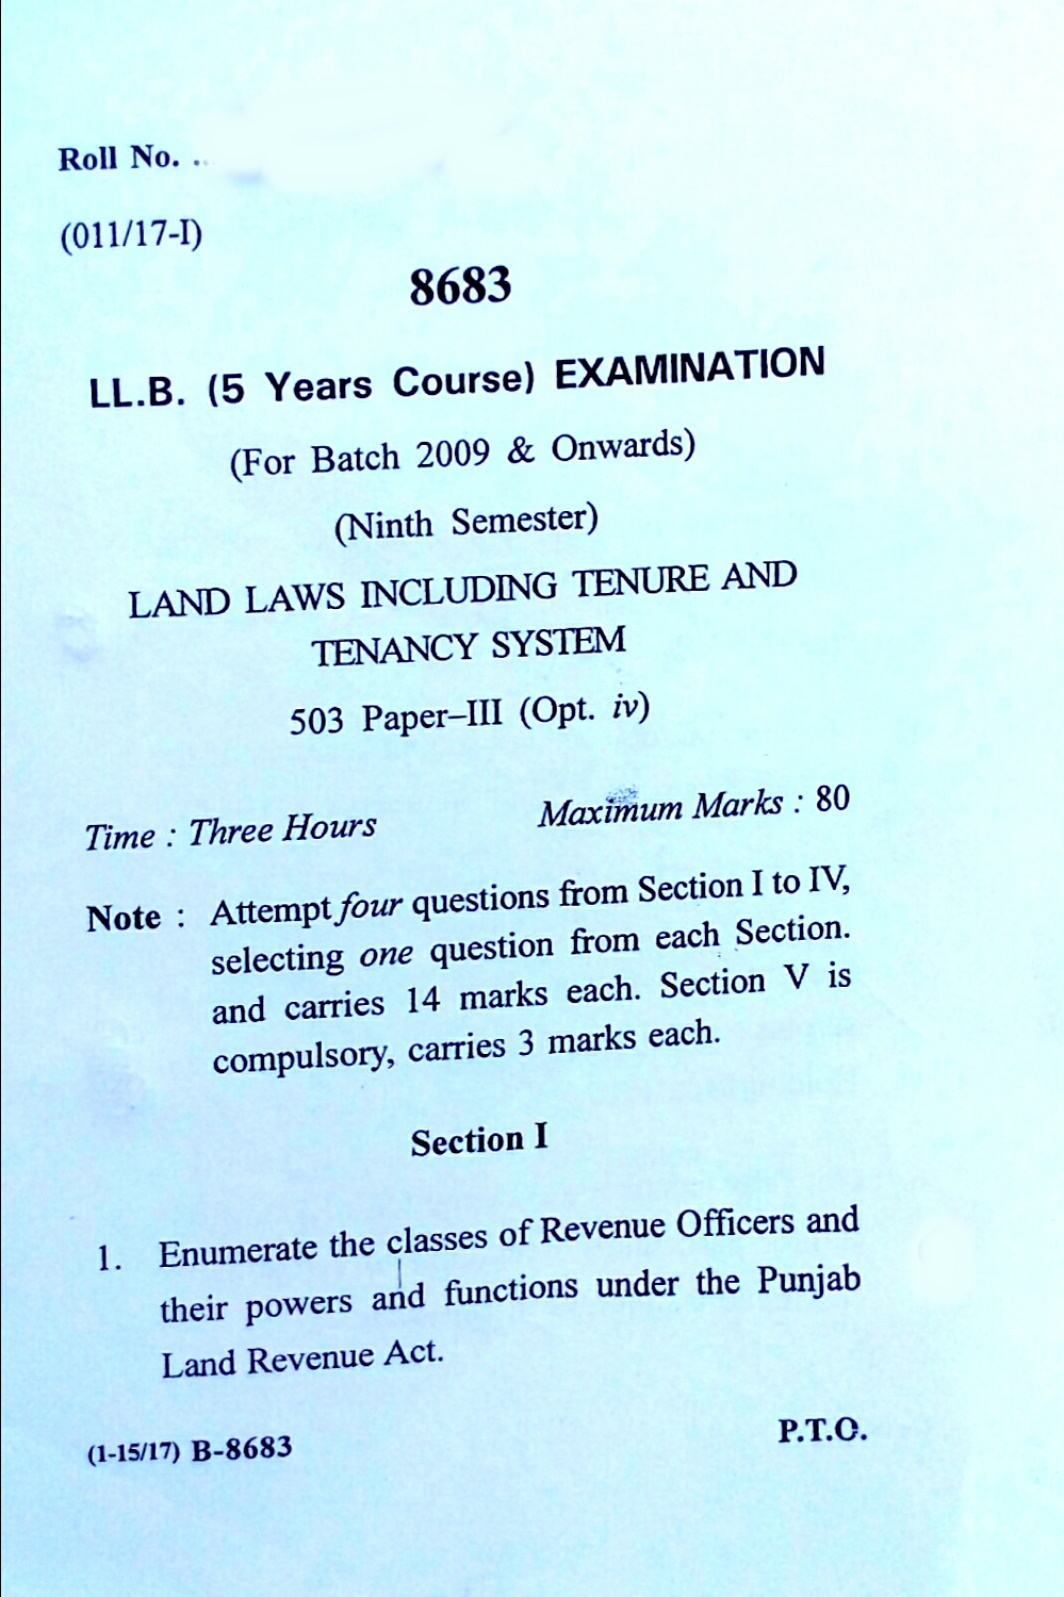 Previous/Last years question papers of Land Laws of LL B